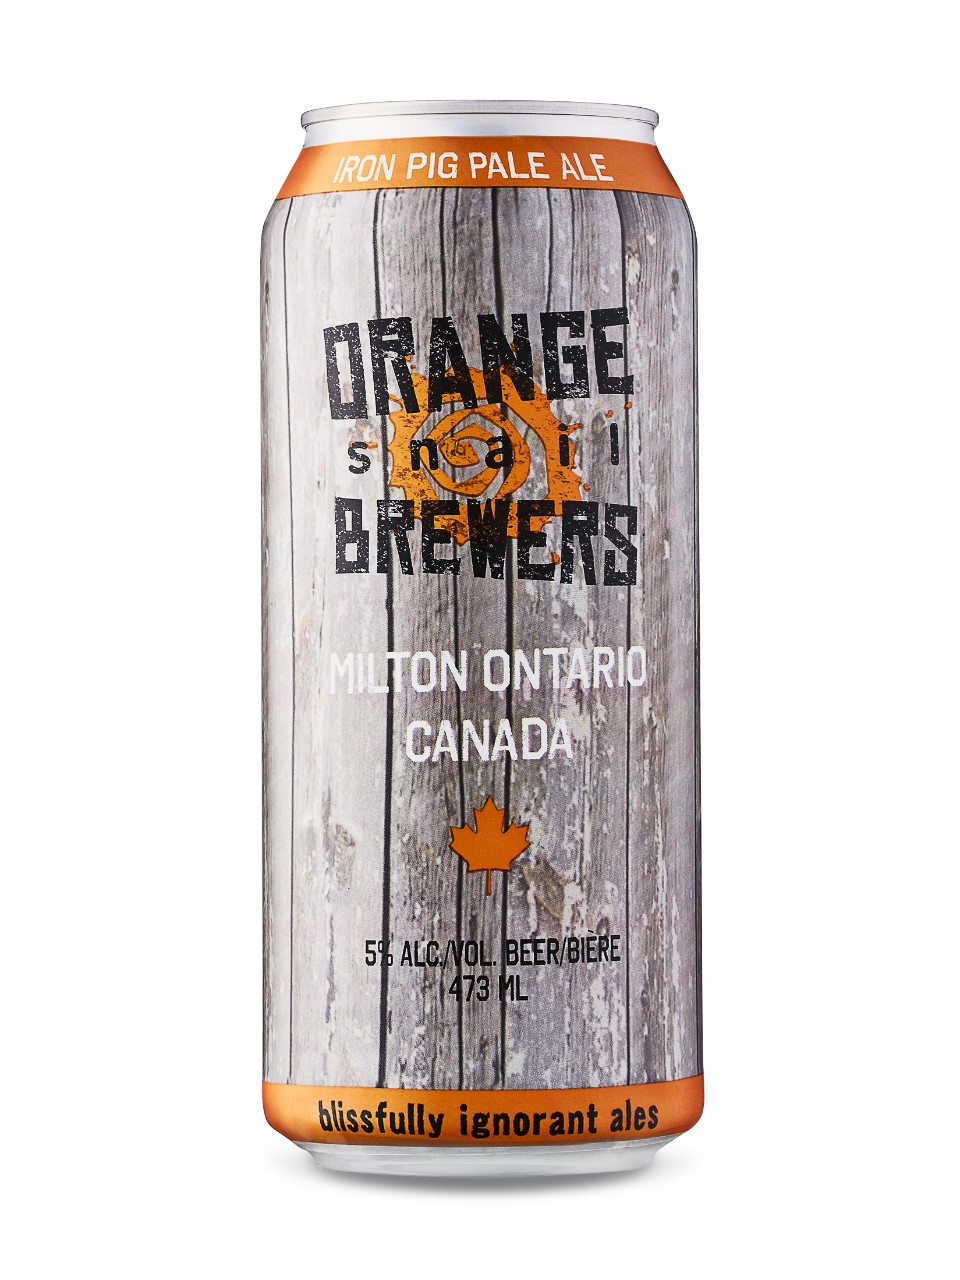 Image for Orange Snail Iron Pig Pale Ale from LCBO